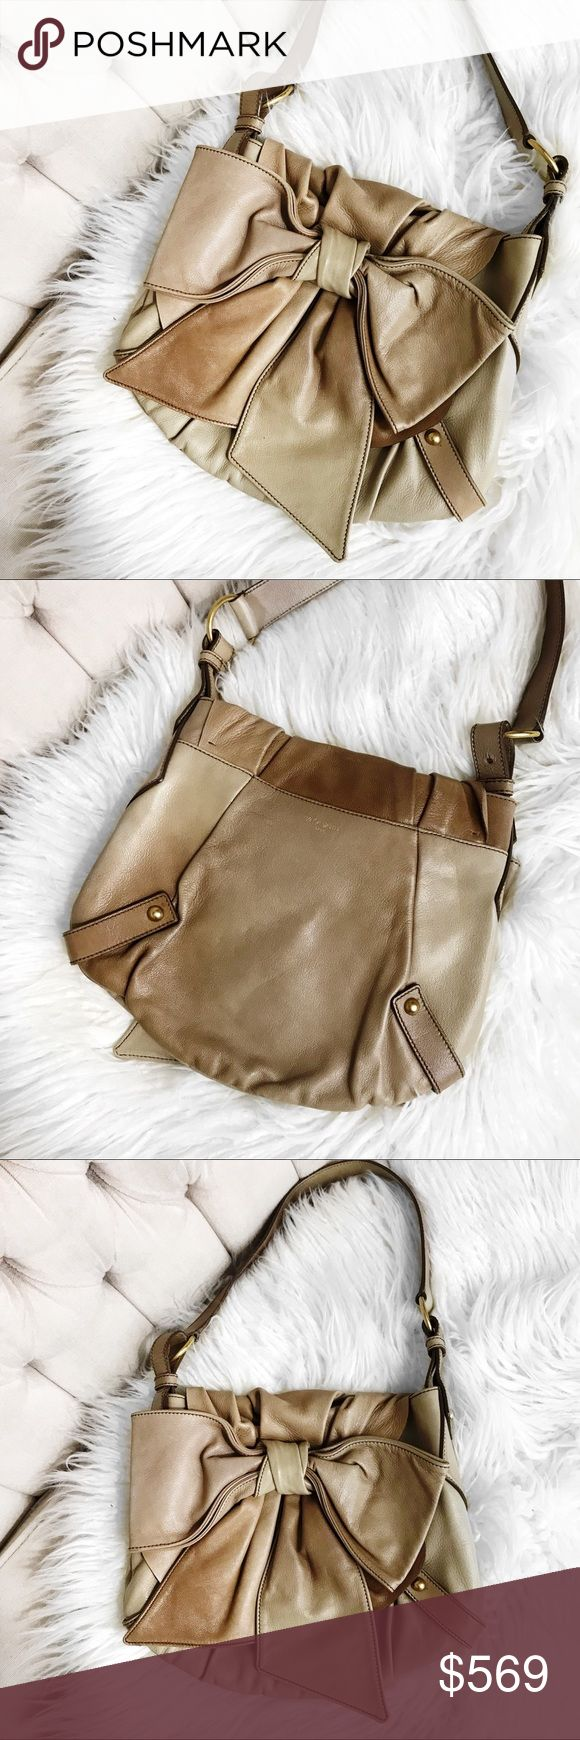 """Ysl leather bow bag Love this! Super chic distressed leather bow bag by Yves Saint Laurent. No trades. All photos are of actual item you will be receiving. Prices are always flexible, send me your offer! 11.5x11 with 11"""" drop Yves Saint Laurent Bags"""